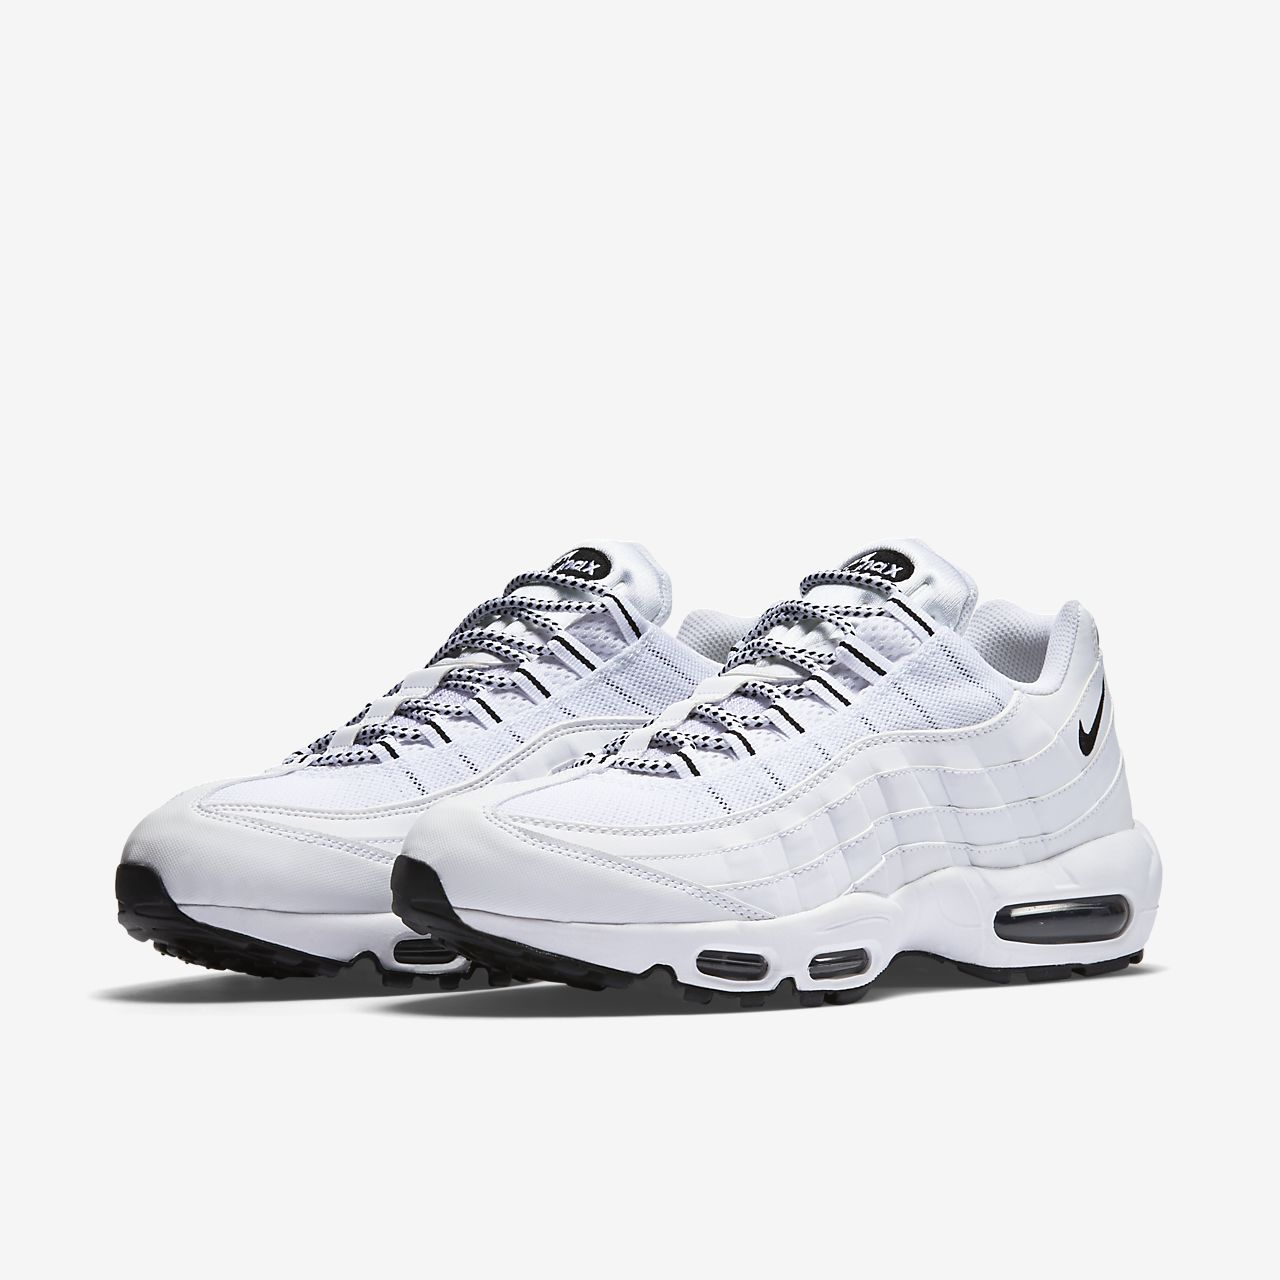 3b70a72623 air max 95s white cheap > OFF69% The Largest Catalog Discounts